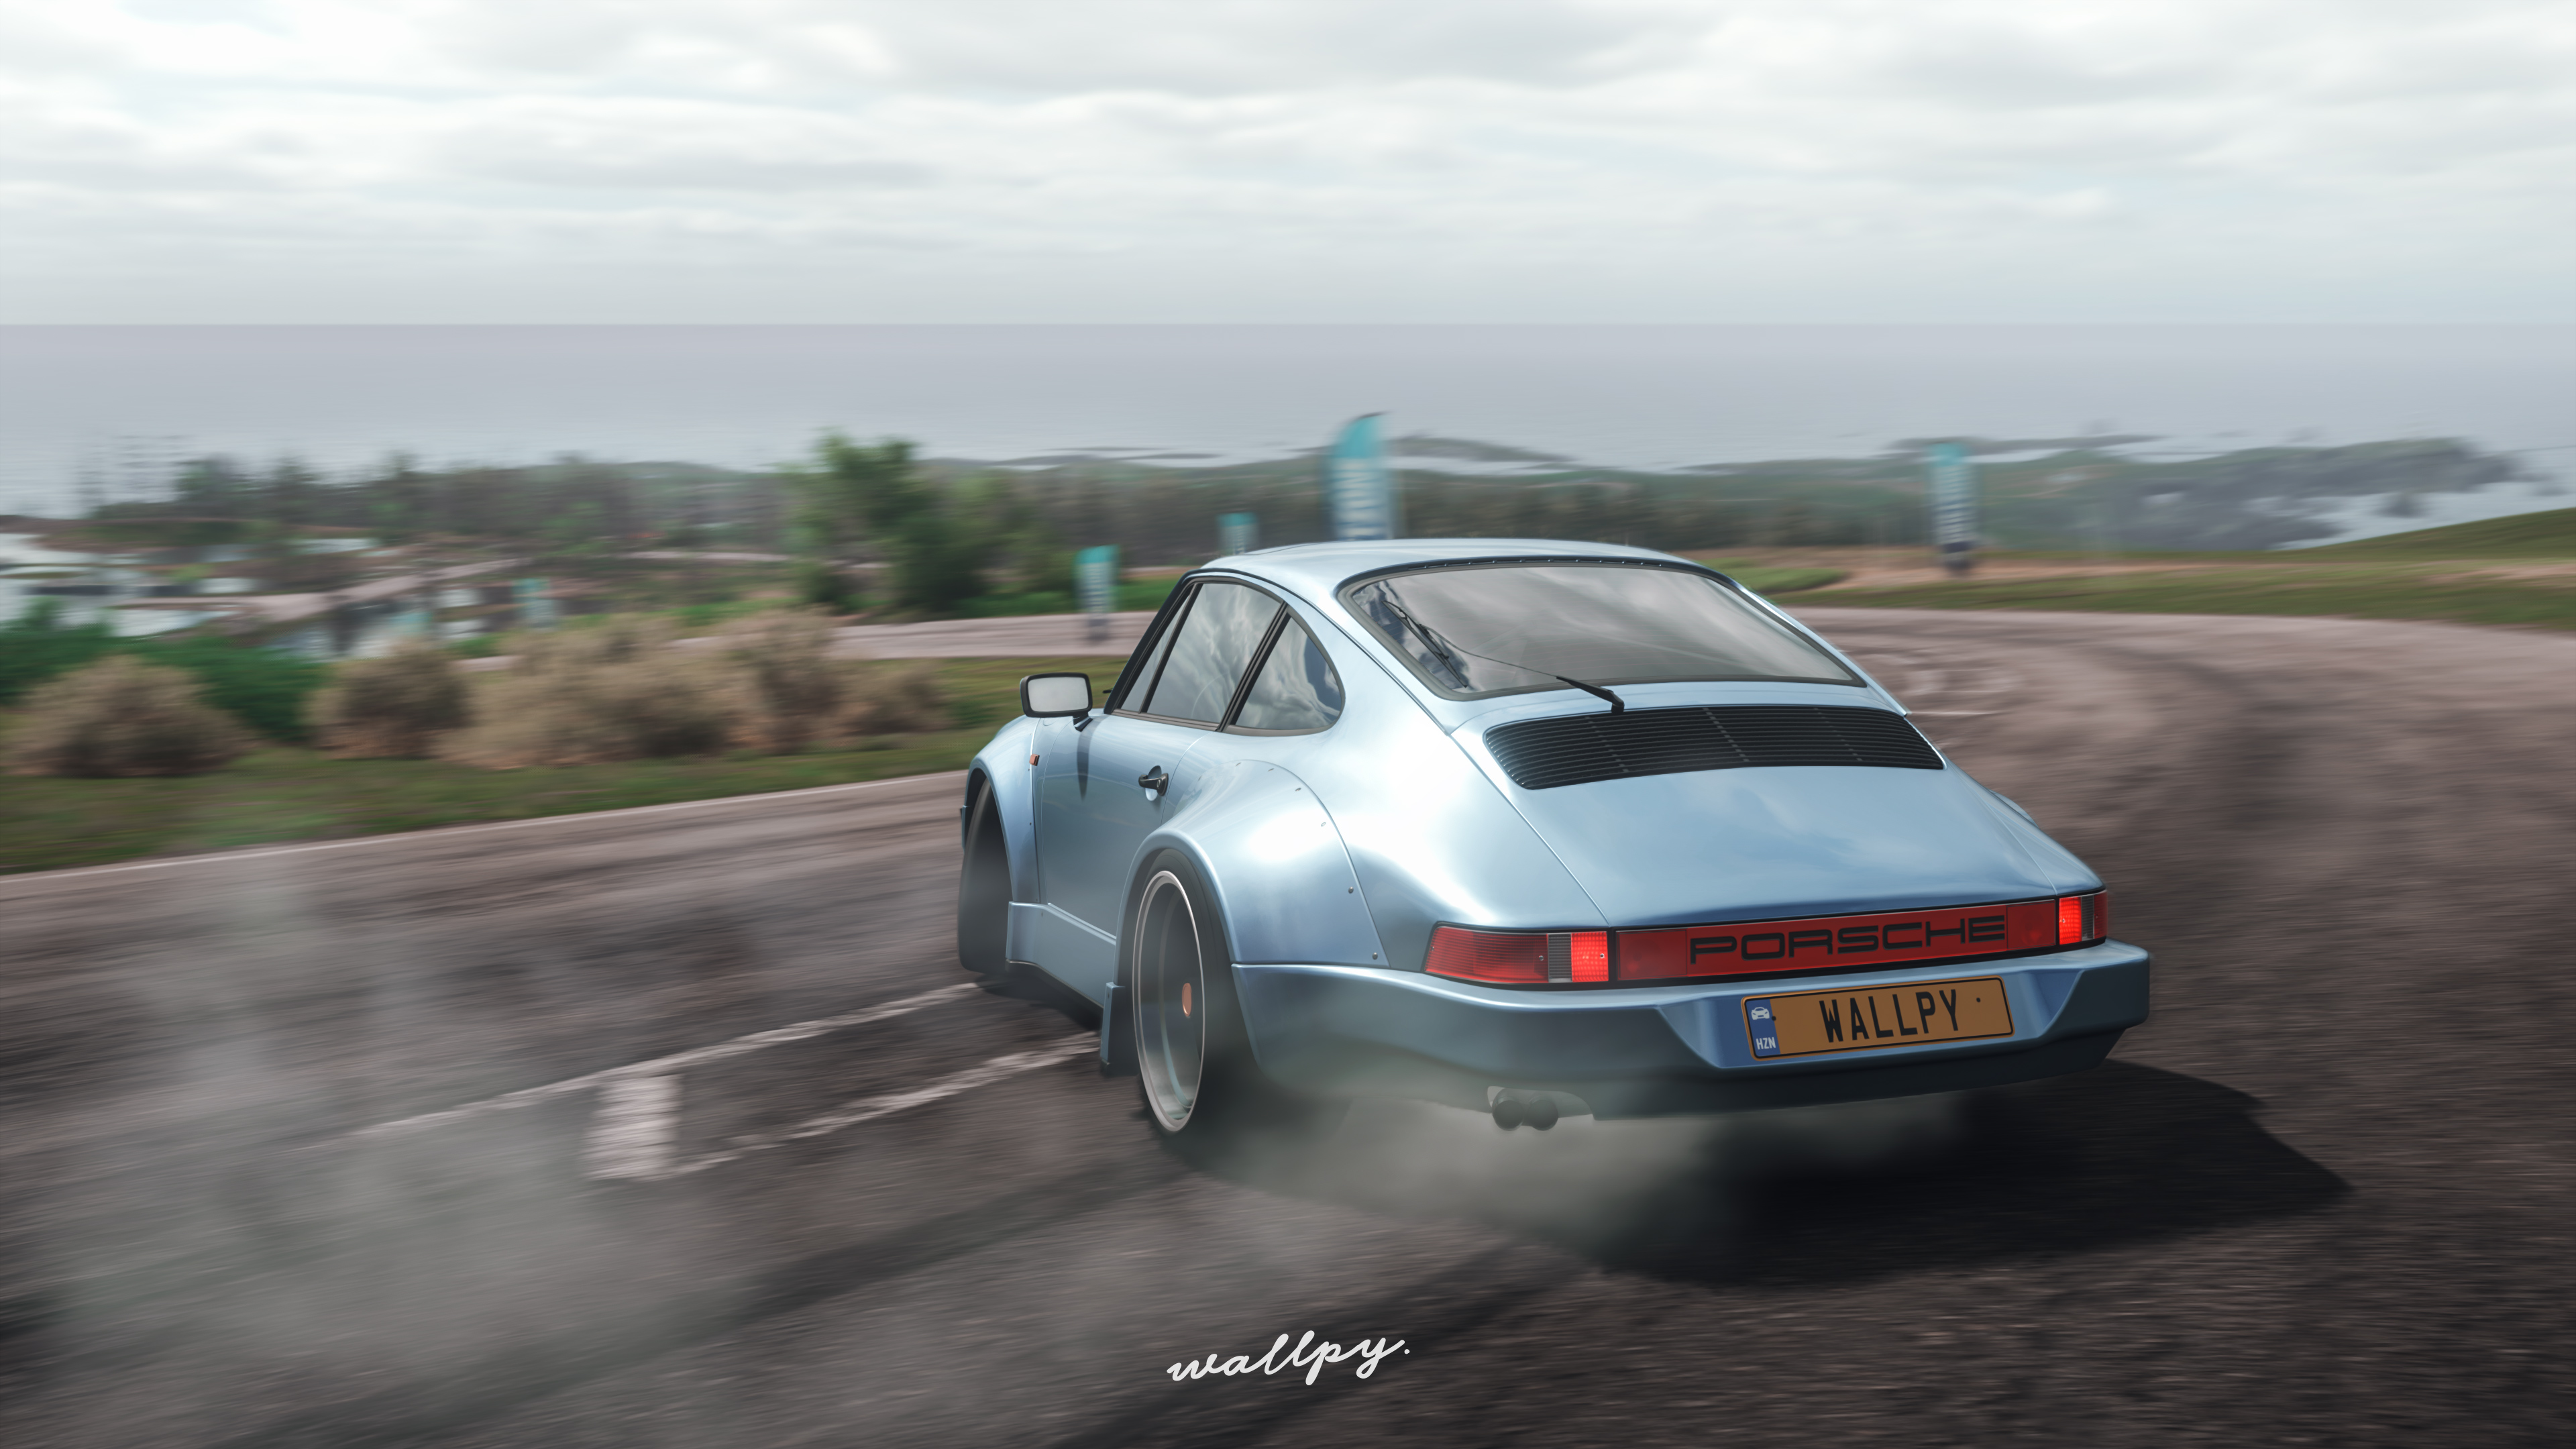 porsche drift forza horizon 4 4k 1545589542 - Porsche Drift Forza Horizon 4 4k - porsche wallpapers, hd-wallpapers, games wallpapers, forza wallpapers, forza horizon 4 wallpapers, drift wallpapers, cars wallpapers, 4k-wallpapers, 2018 games wallpapers